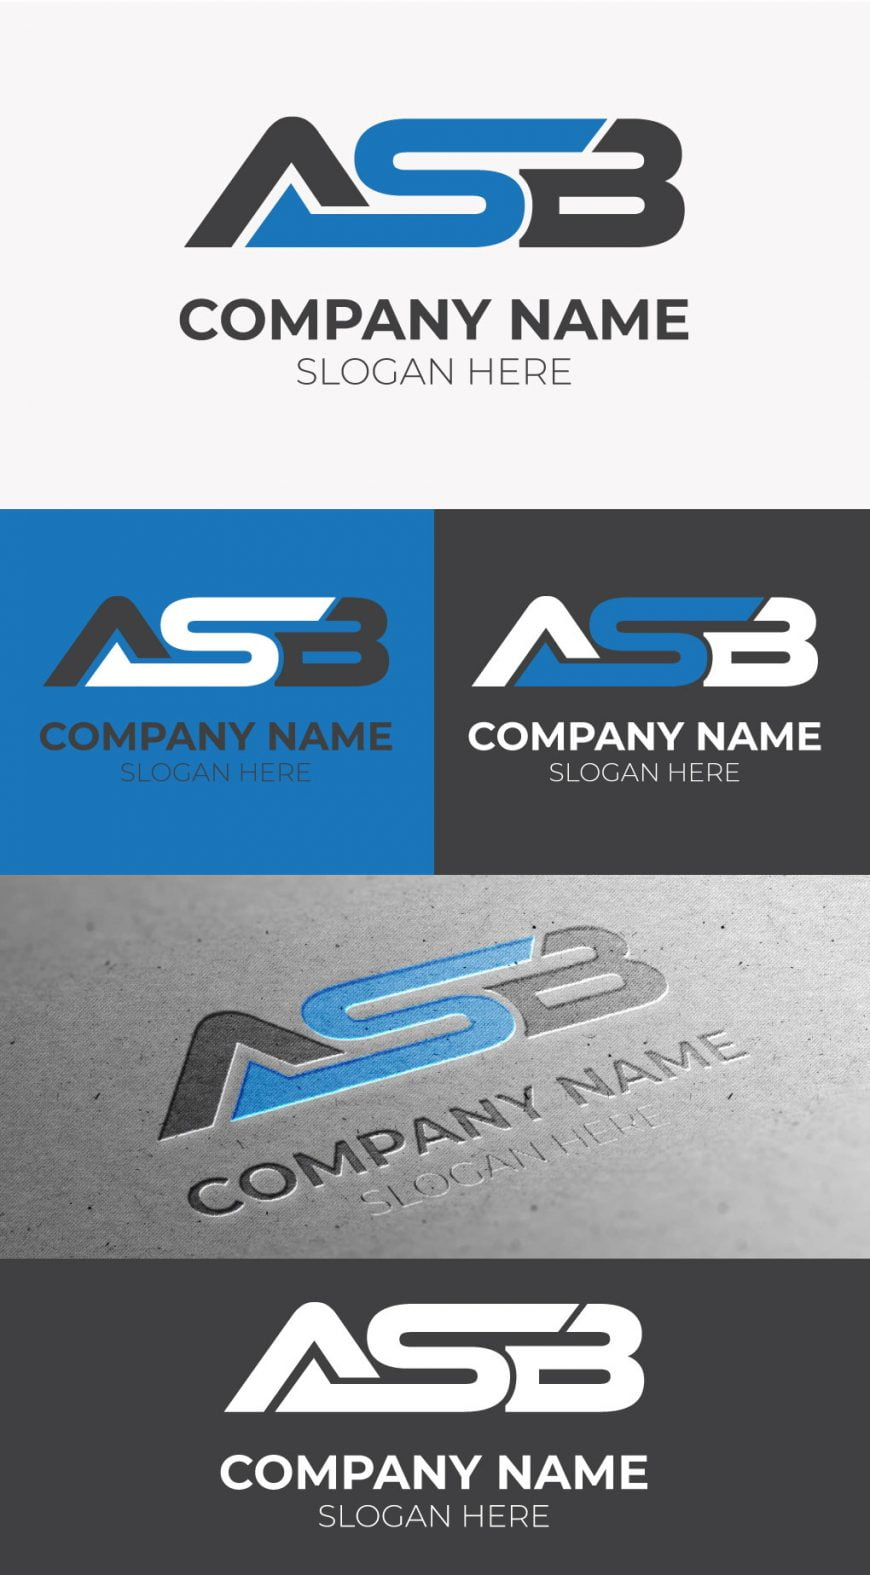 ASB-LETTER-LOGO-FREE-TEMPLATE